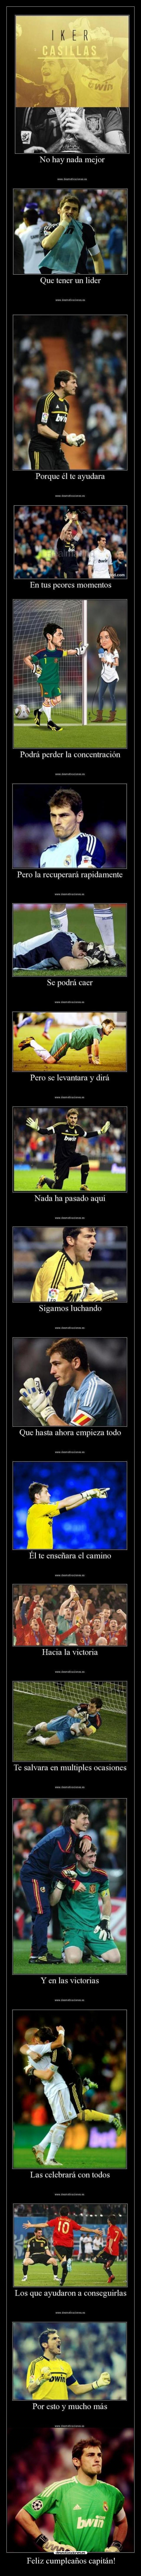 carteles iker casillas real madrid hala casillas anos theblur desmotivaciones